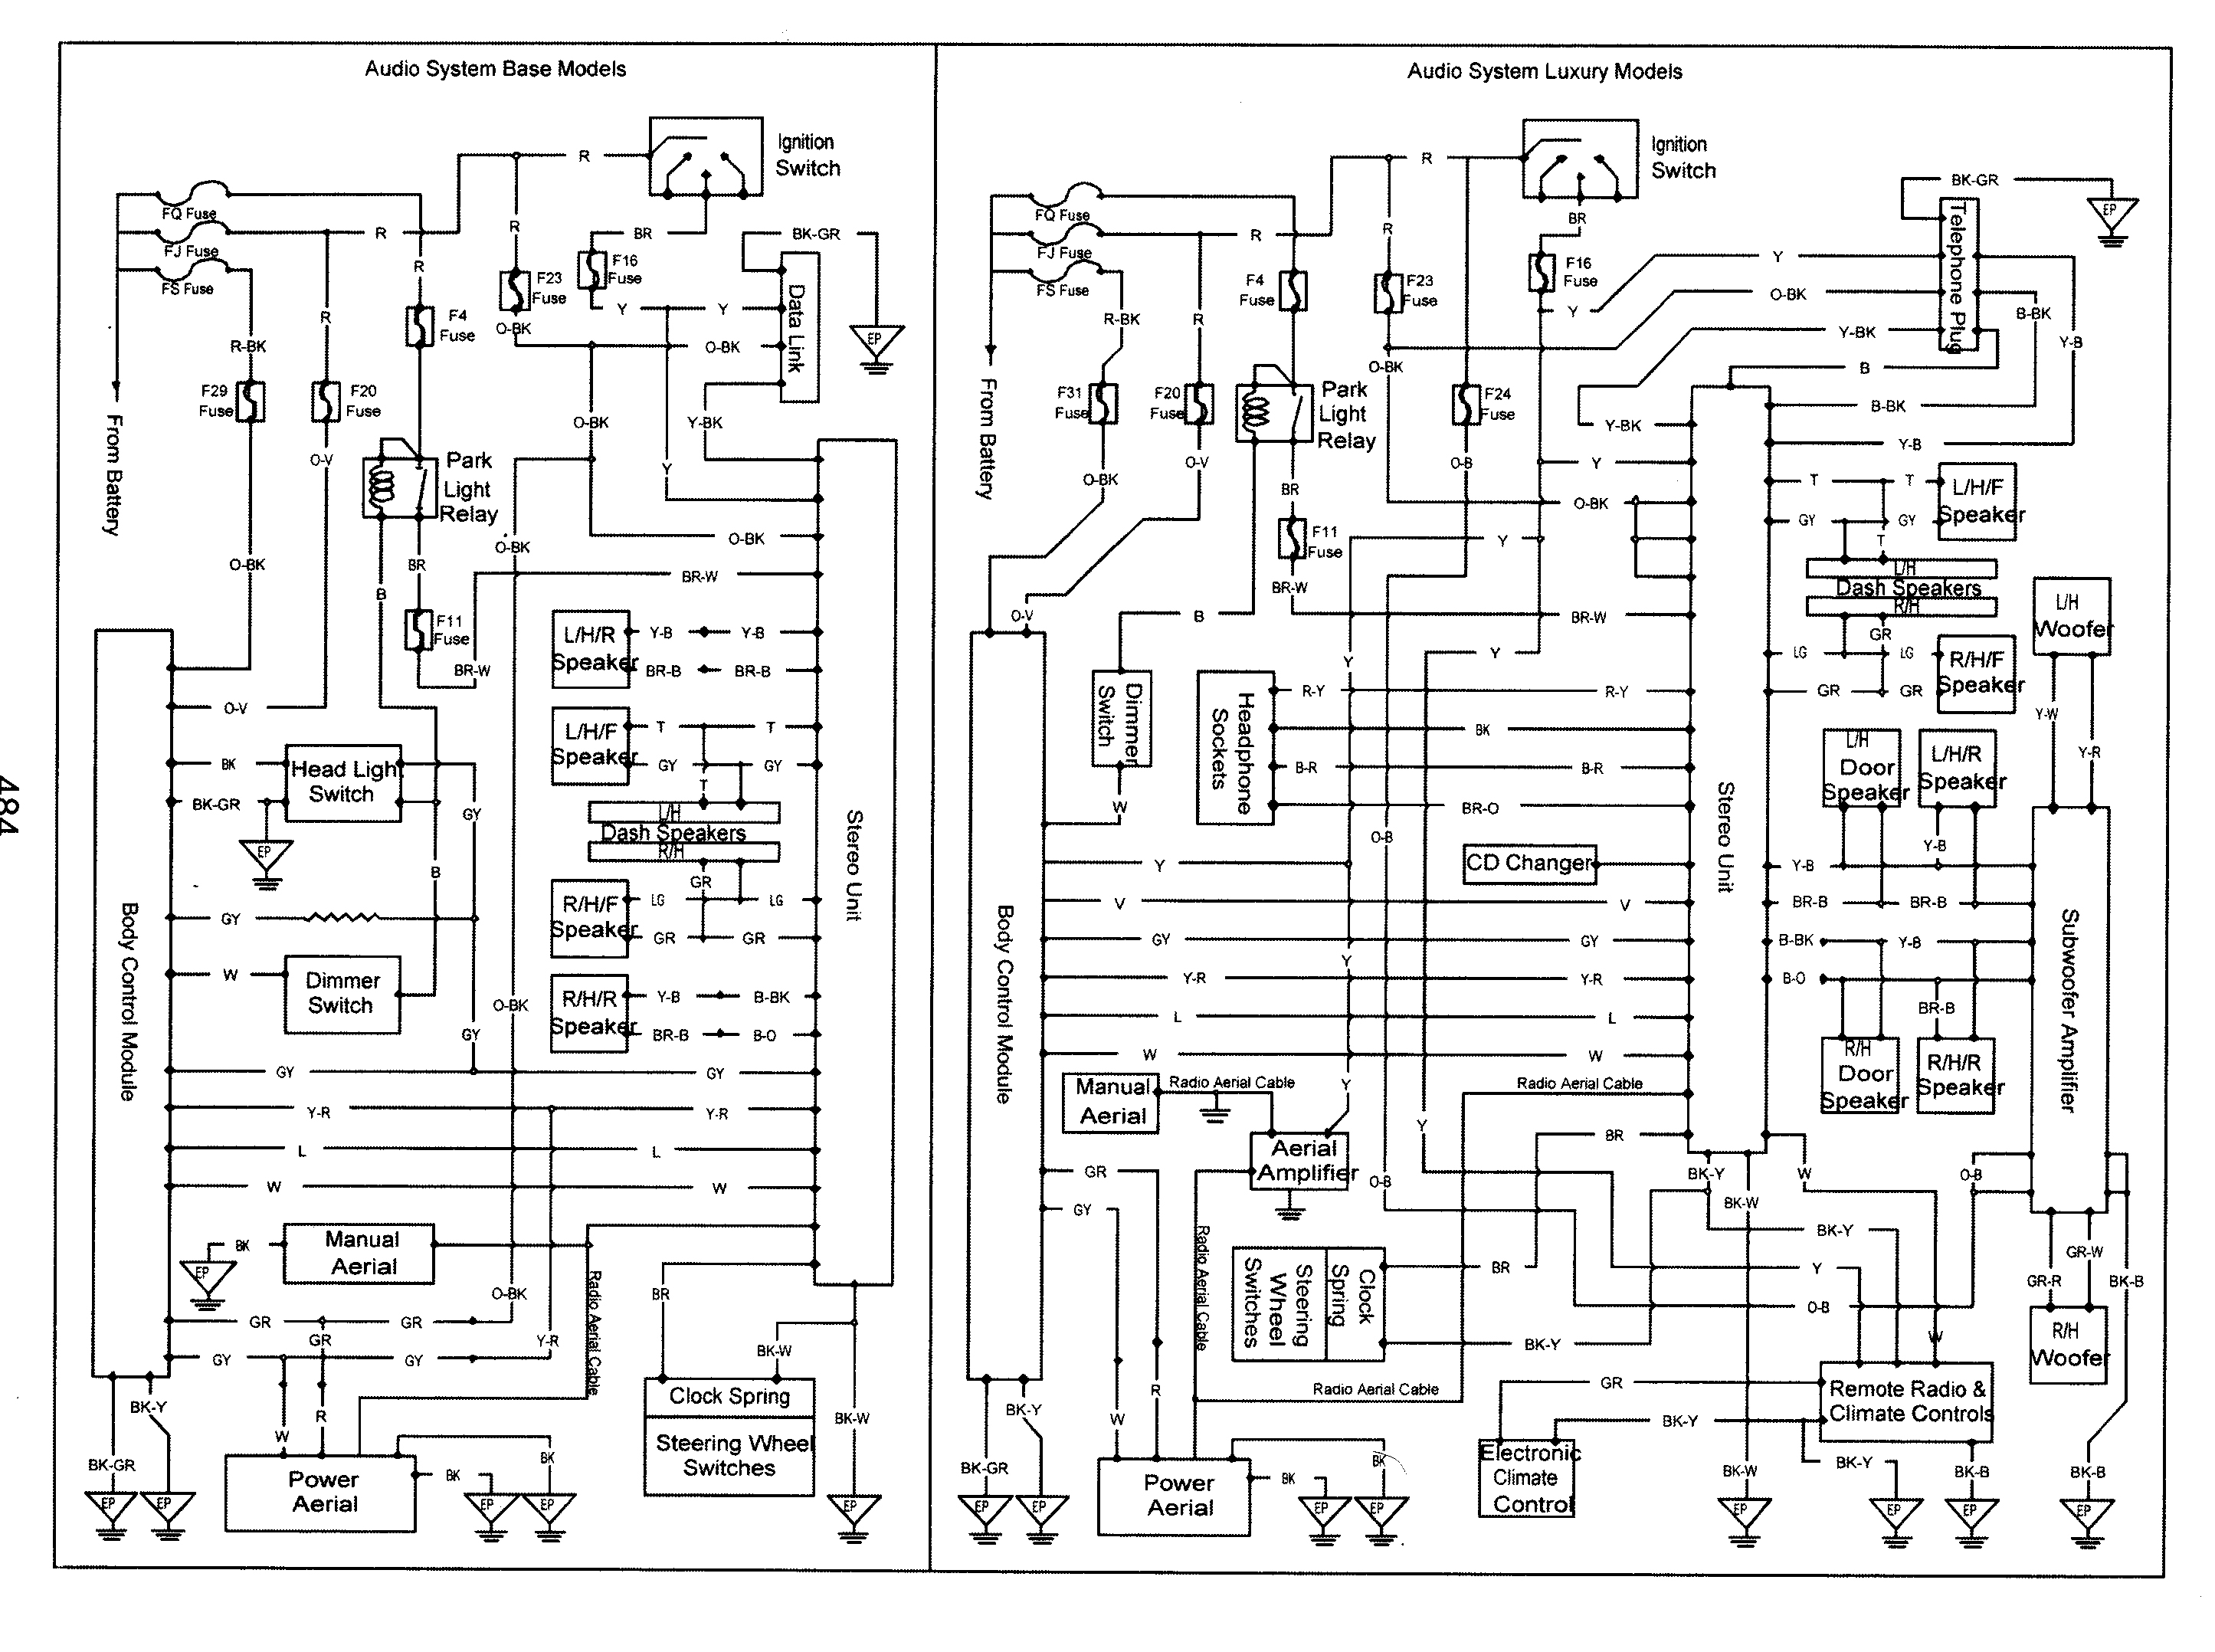 Vs V8 Commodore Ecu Wiring Diagram $ Www.reviewtechnews.com